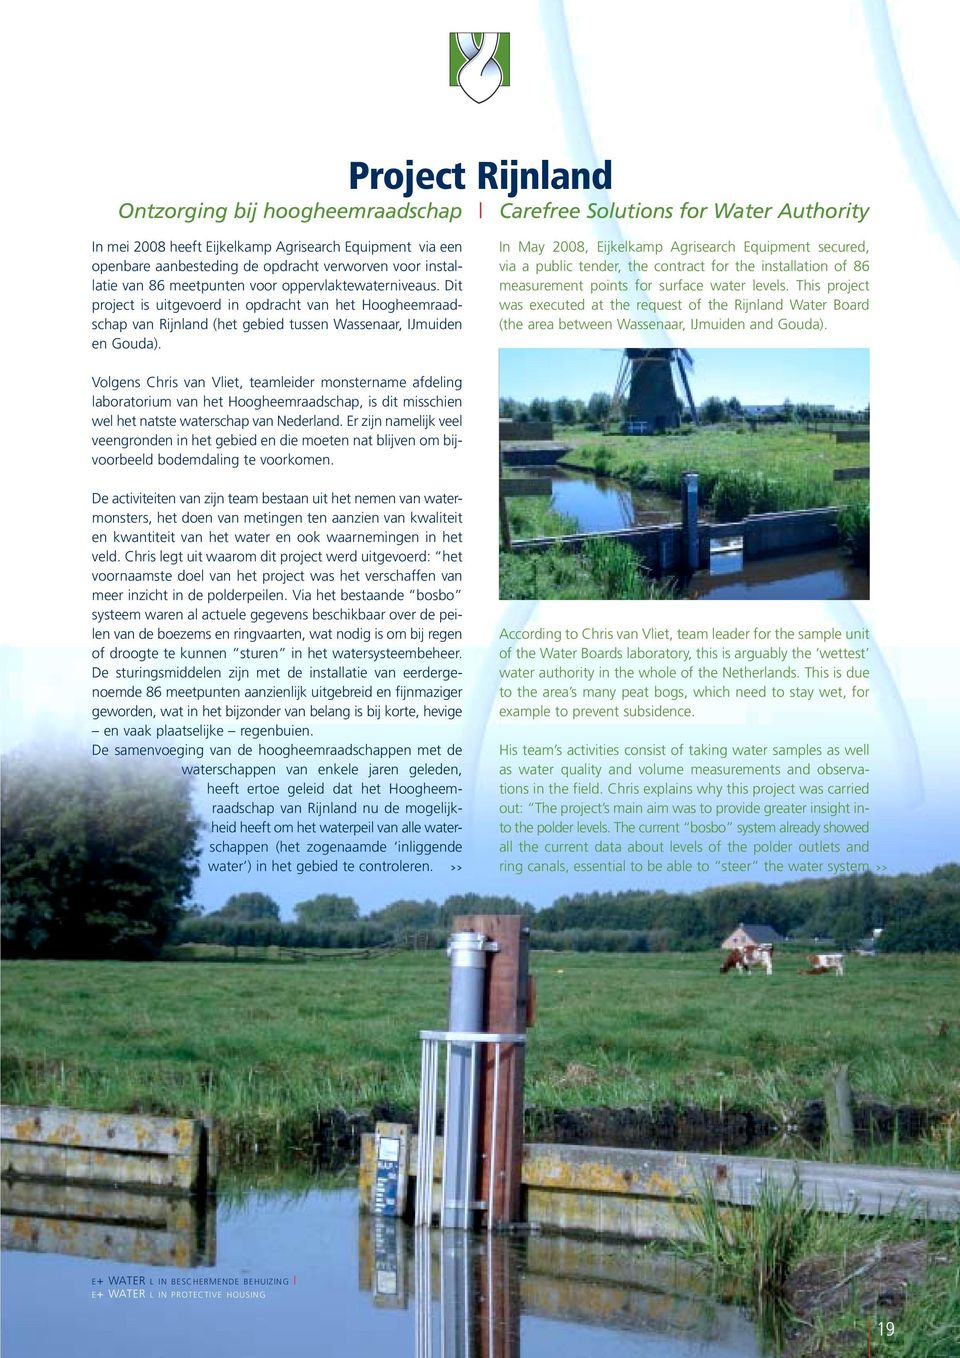 In May 2008, Eijkelkamp Agrisearch Equipment secured, via a public tender, the contract for the installation of 86 measurement points for surface water levels.